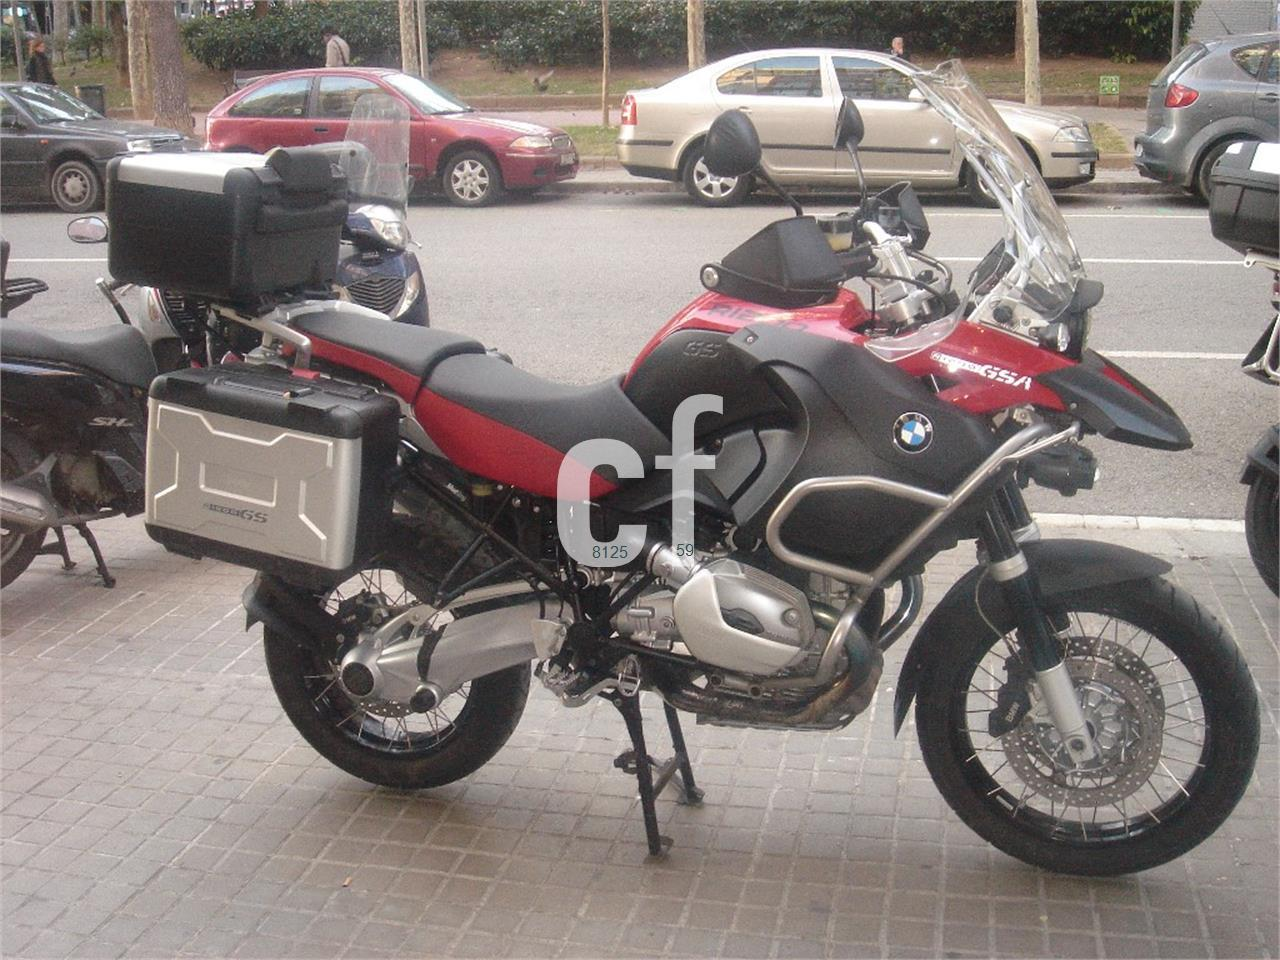 bmw r 1200 gs 105cv de moto segunda mano en barcelona 85000 km. Black Bedroom Furniture Sets. Home Design Ideas